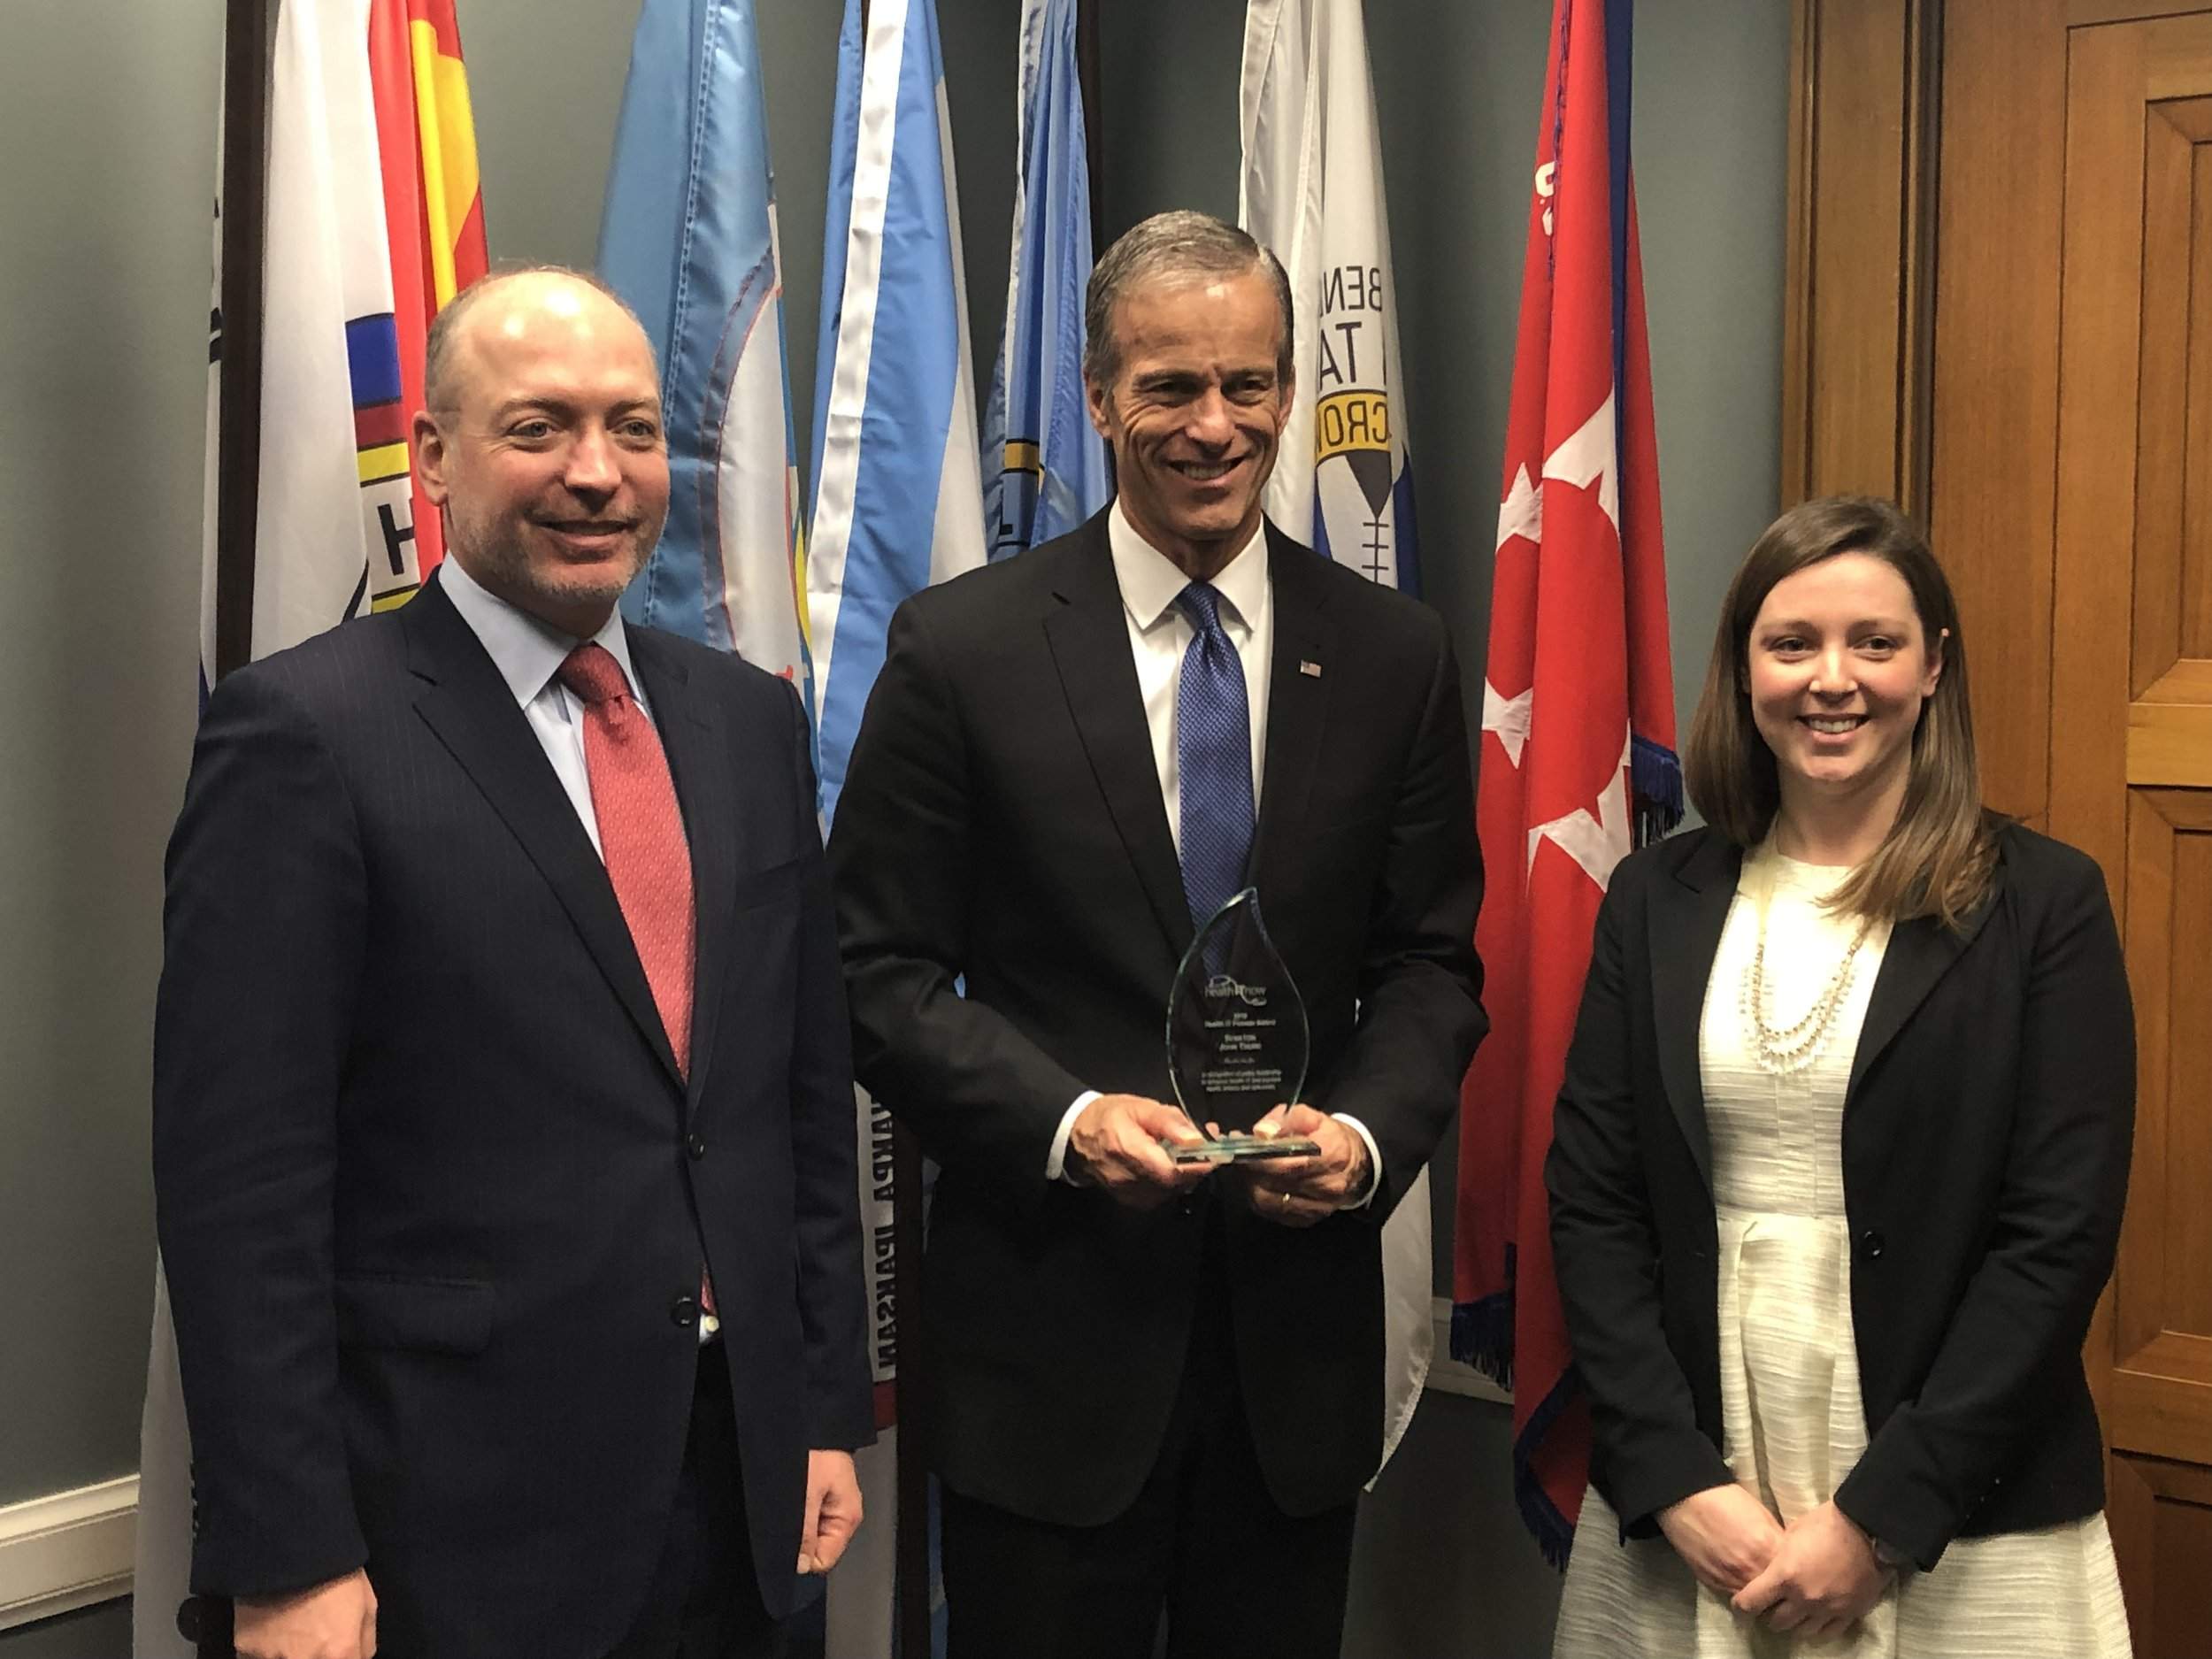 Sen. John Thune (R-SD) accepts the Health IT Pioneer award from Health IT Now Executive Director Joel White (left) and Senior Director of Government Affairs Catherine Pugh (right).